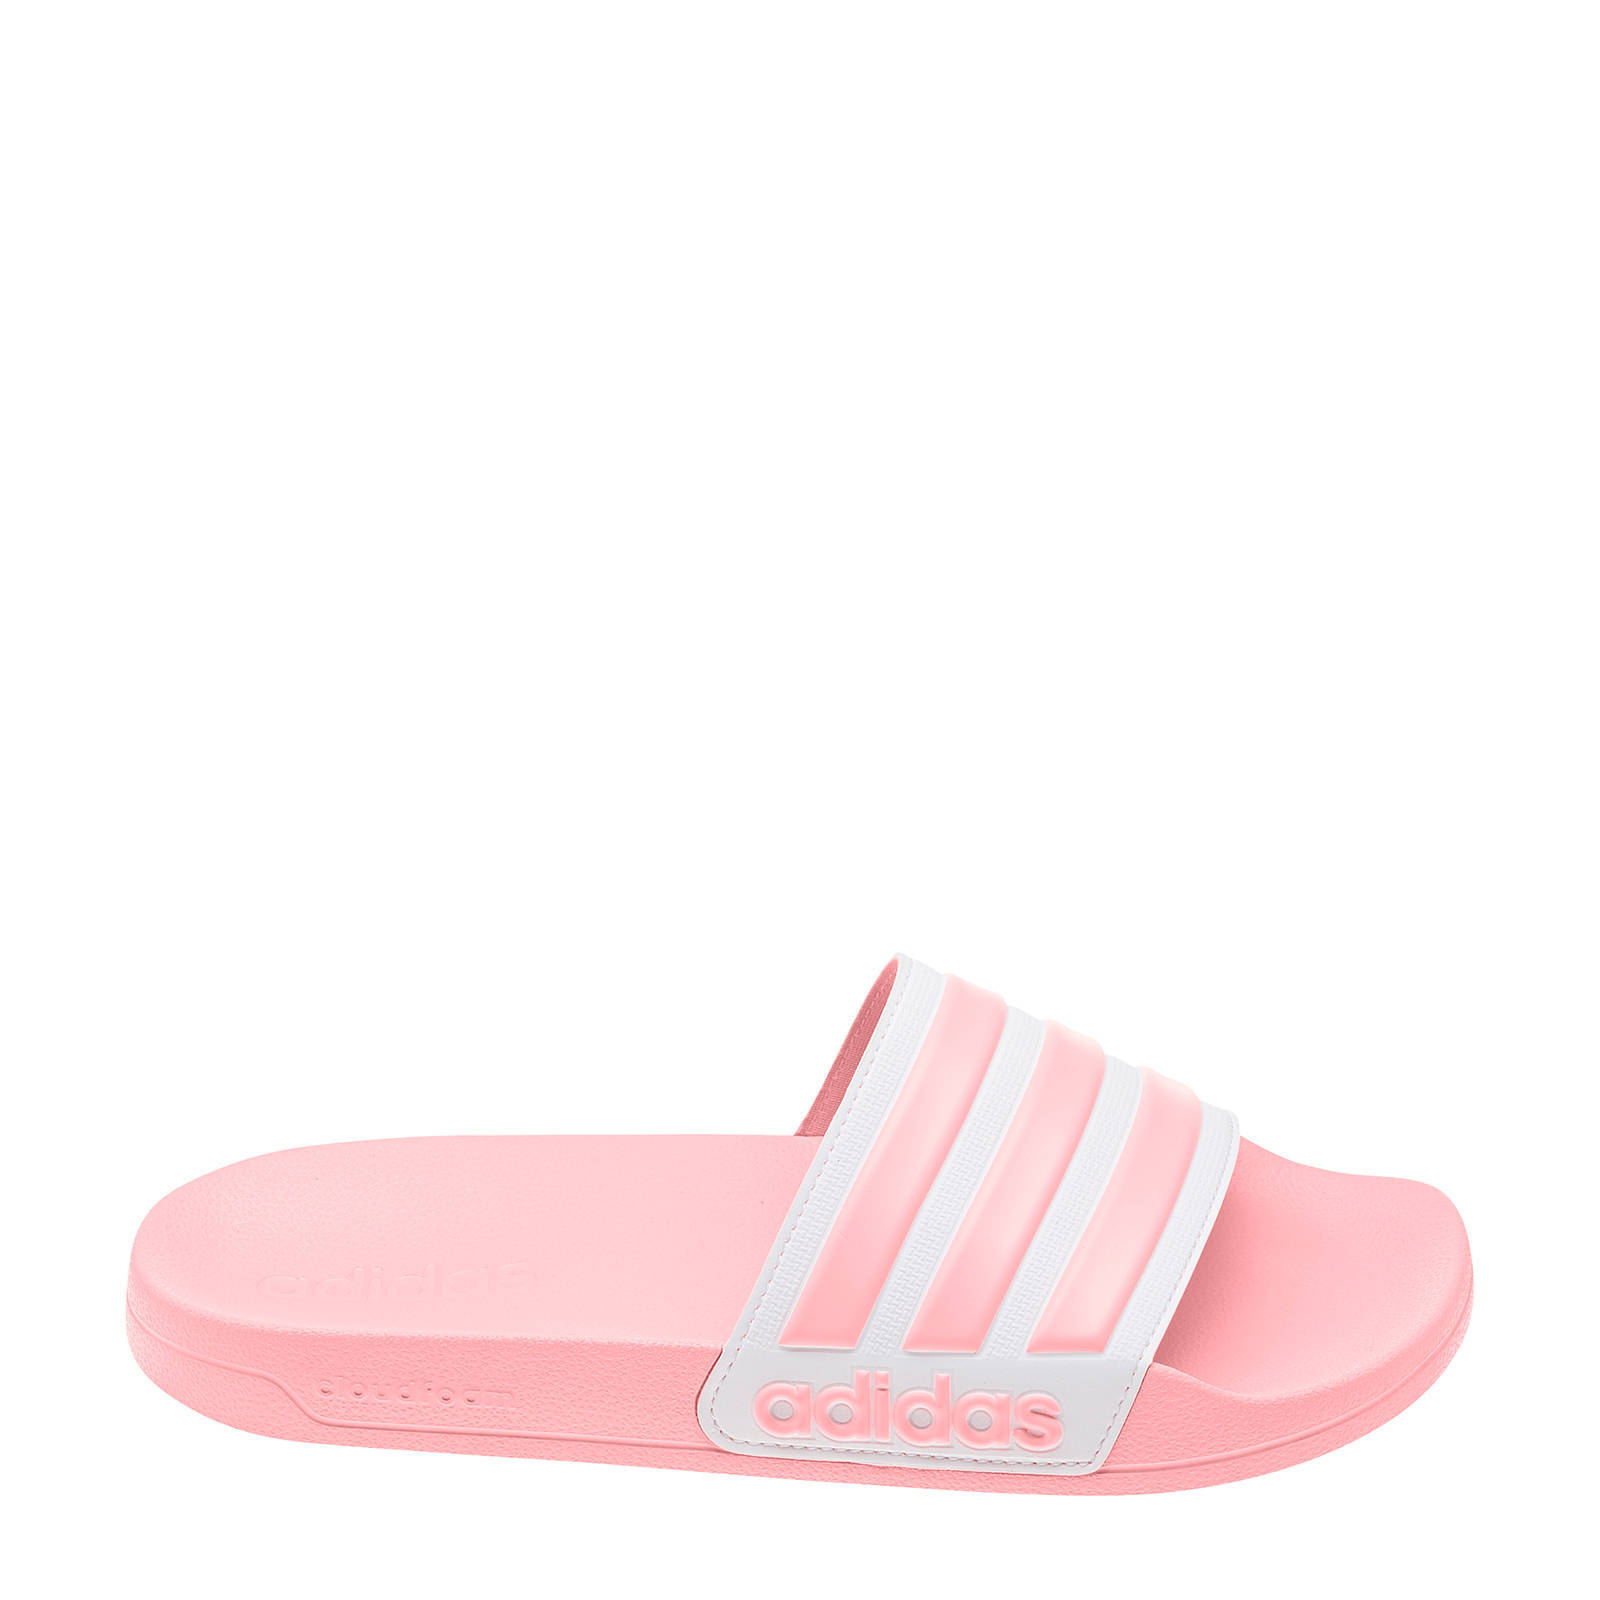 Adilette Shower badslippers roze